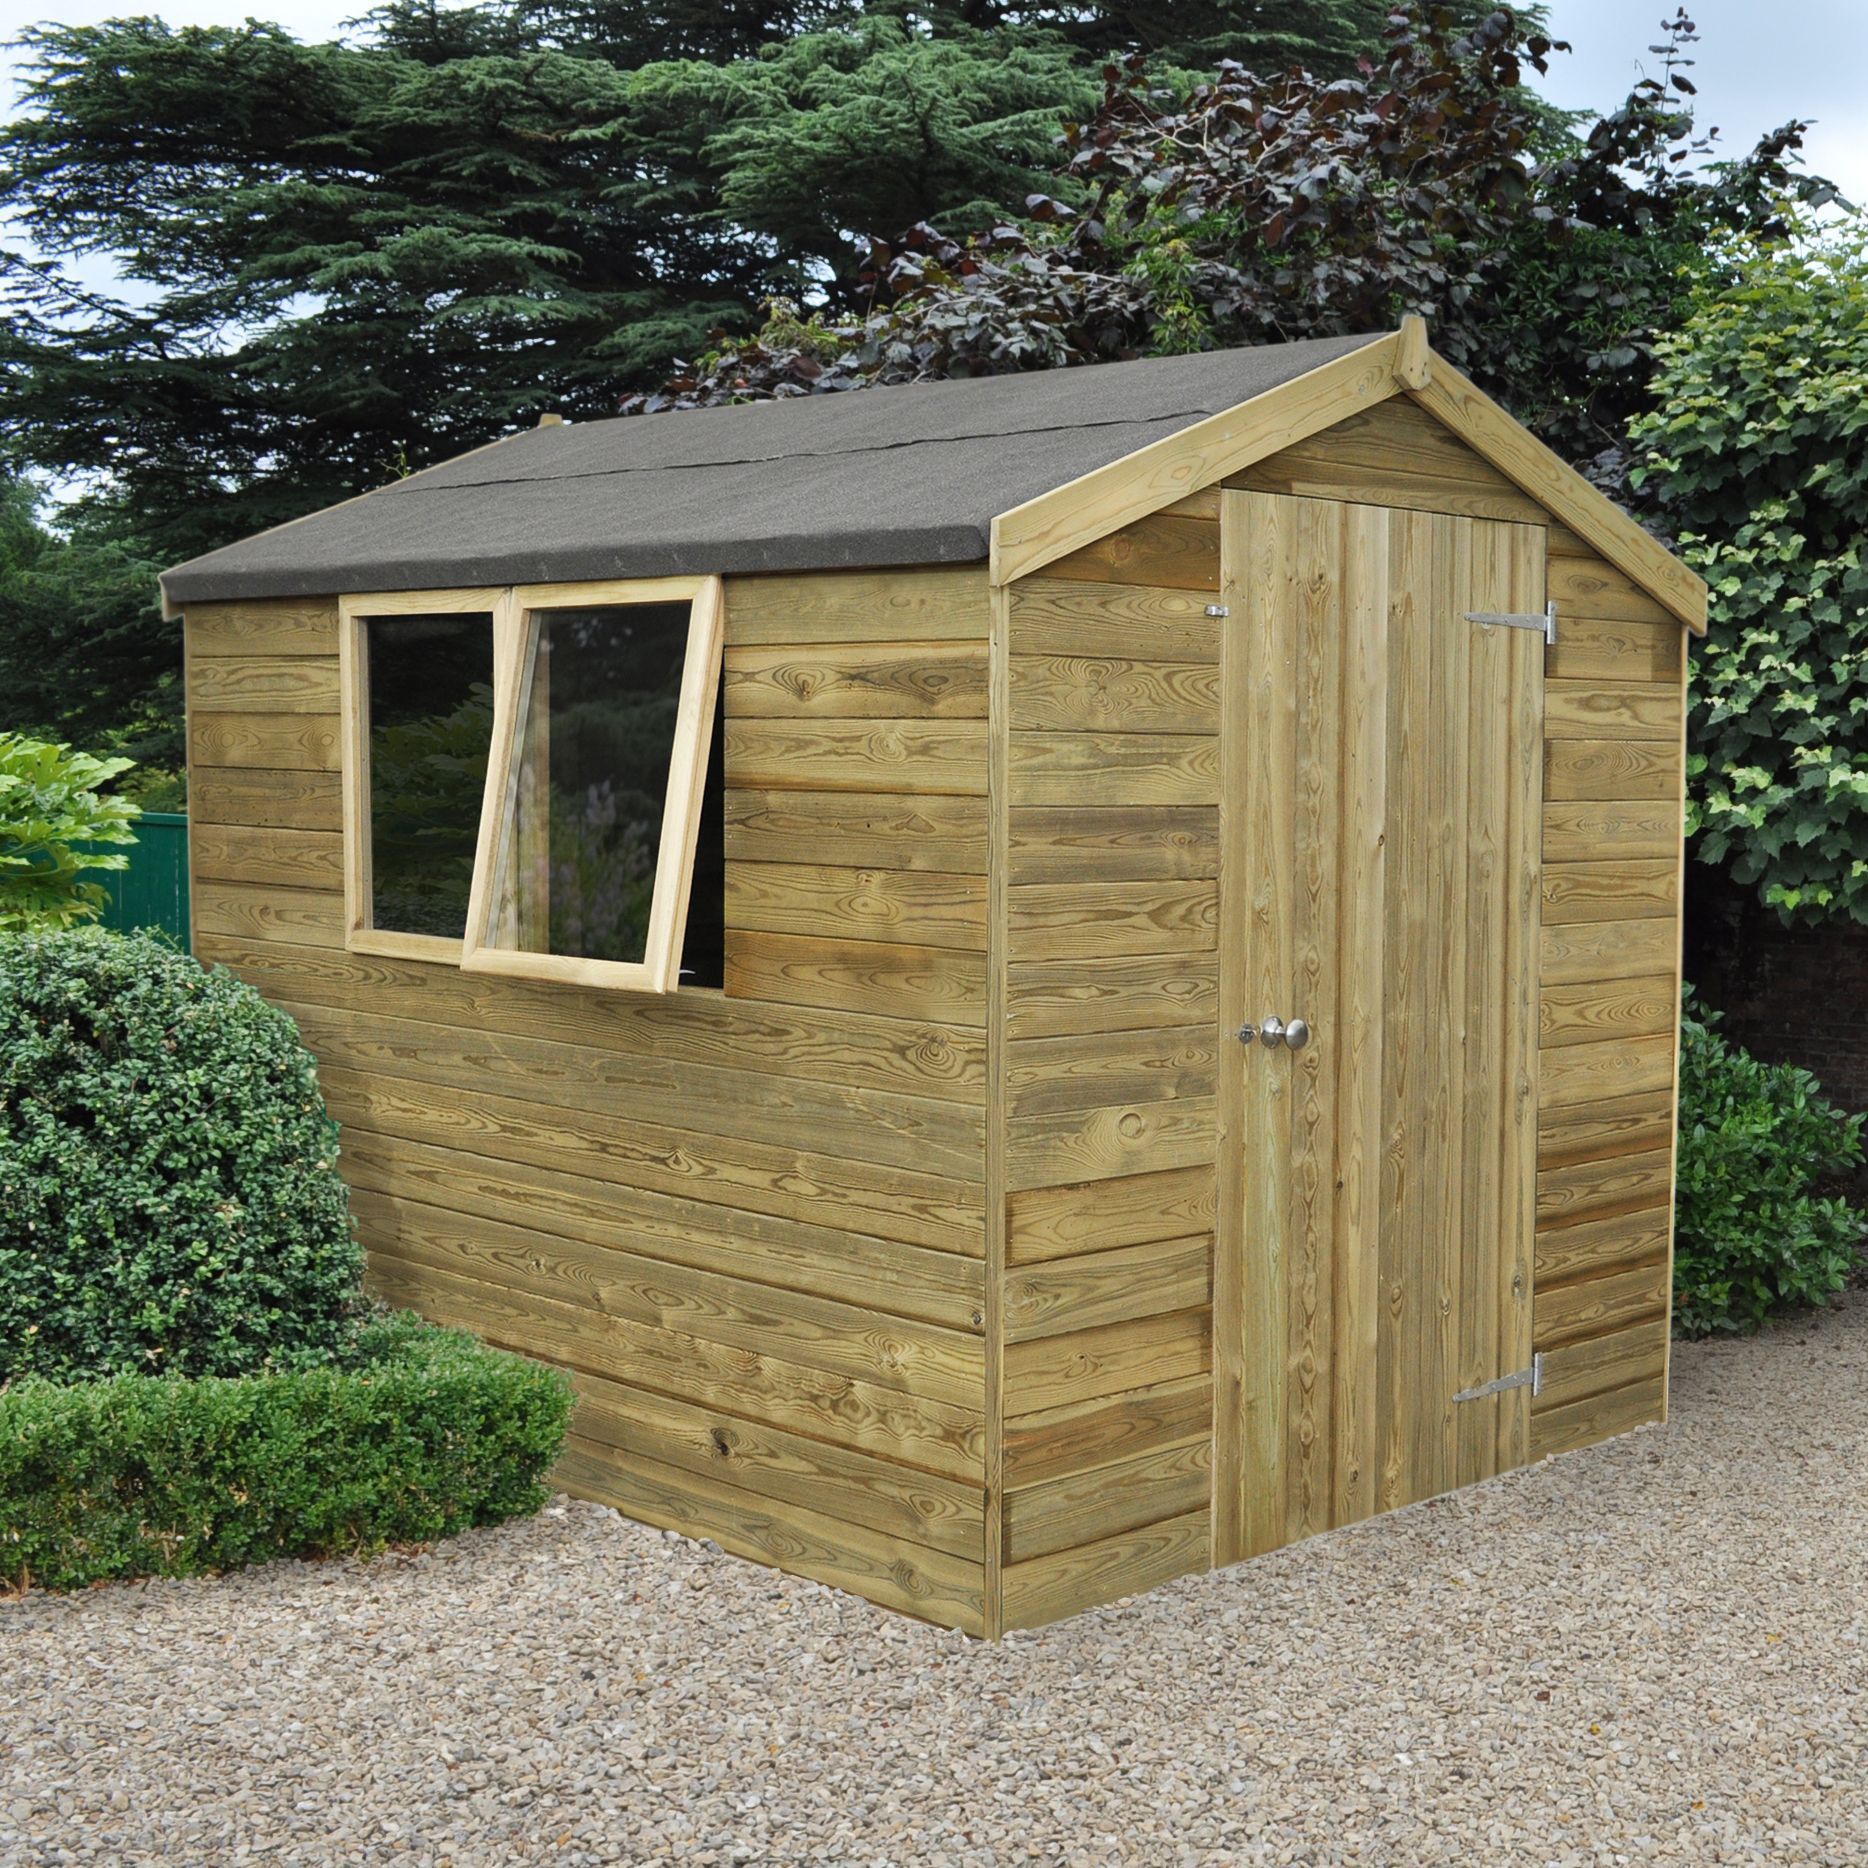 8X6 Apex Tongue & Groove Wooden Shed